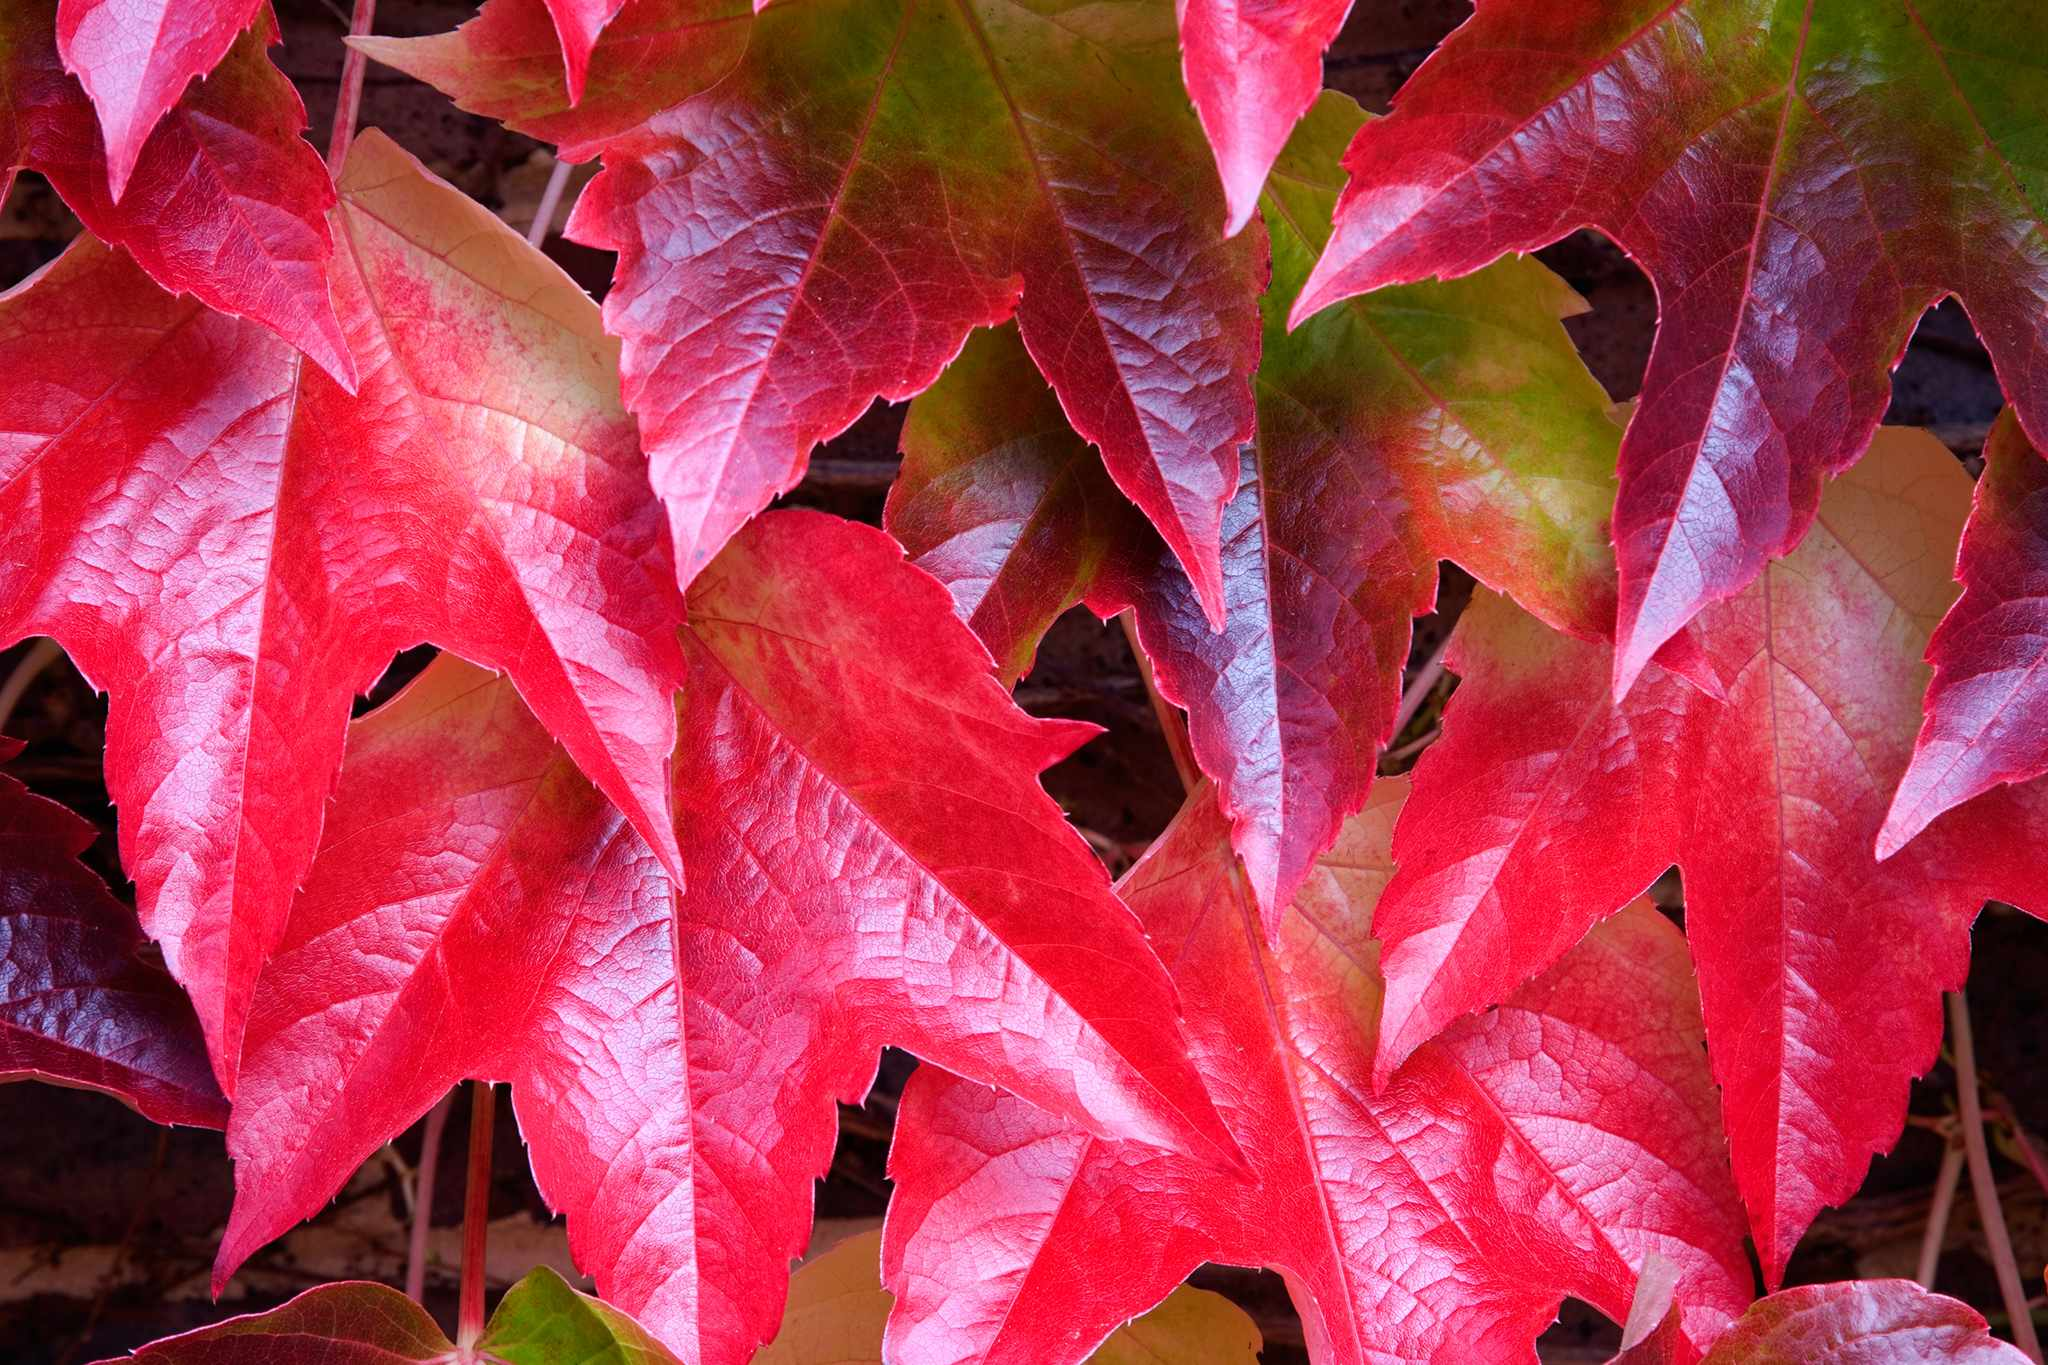 Boston ivy, Parthenocissus tricuspidata. Photo: Getty Images.